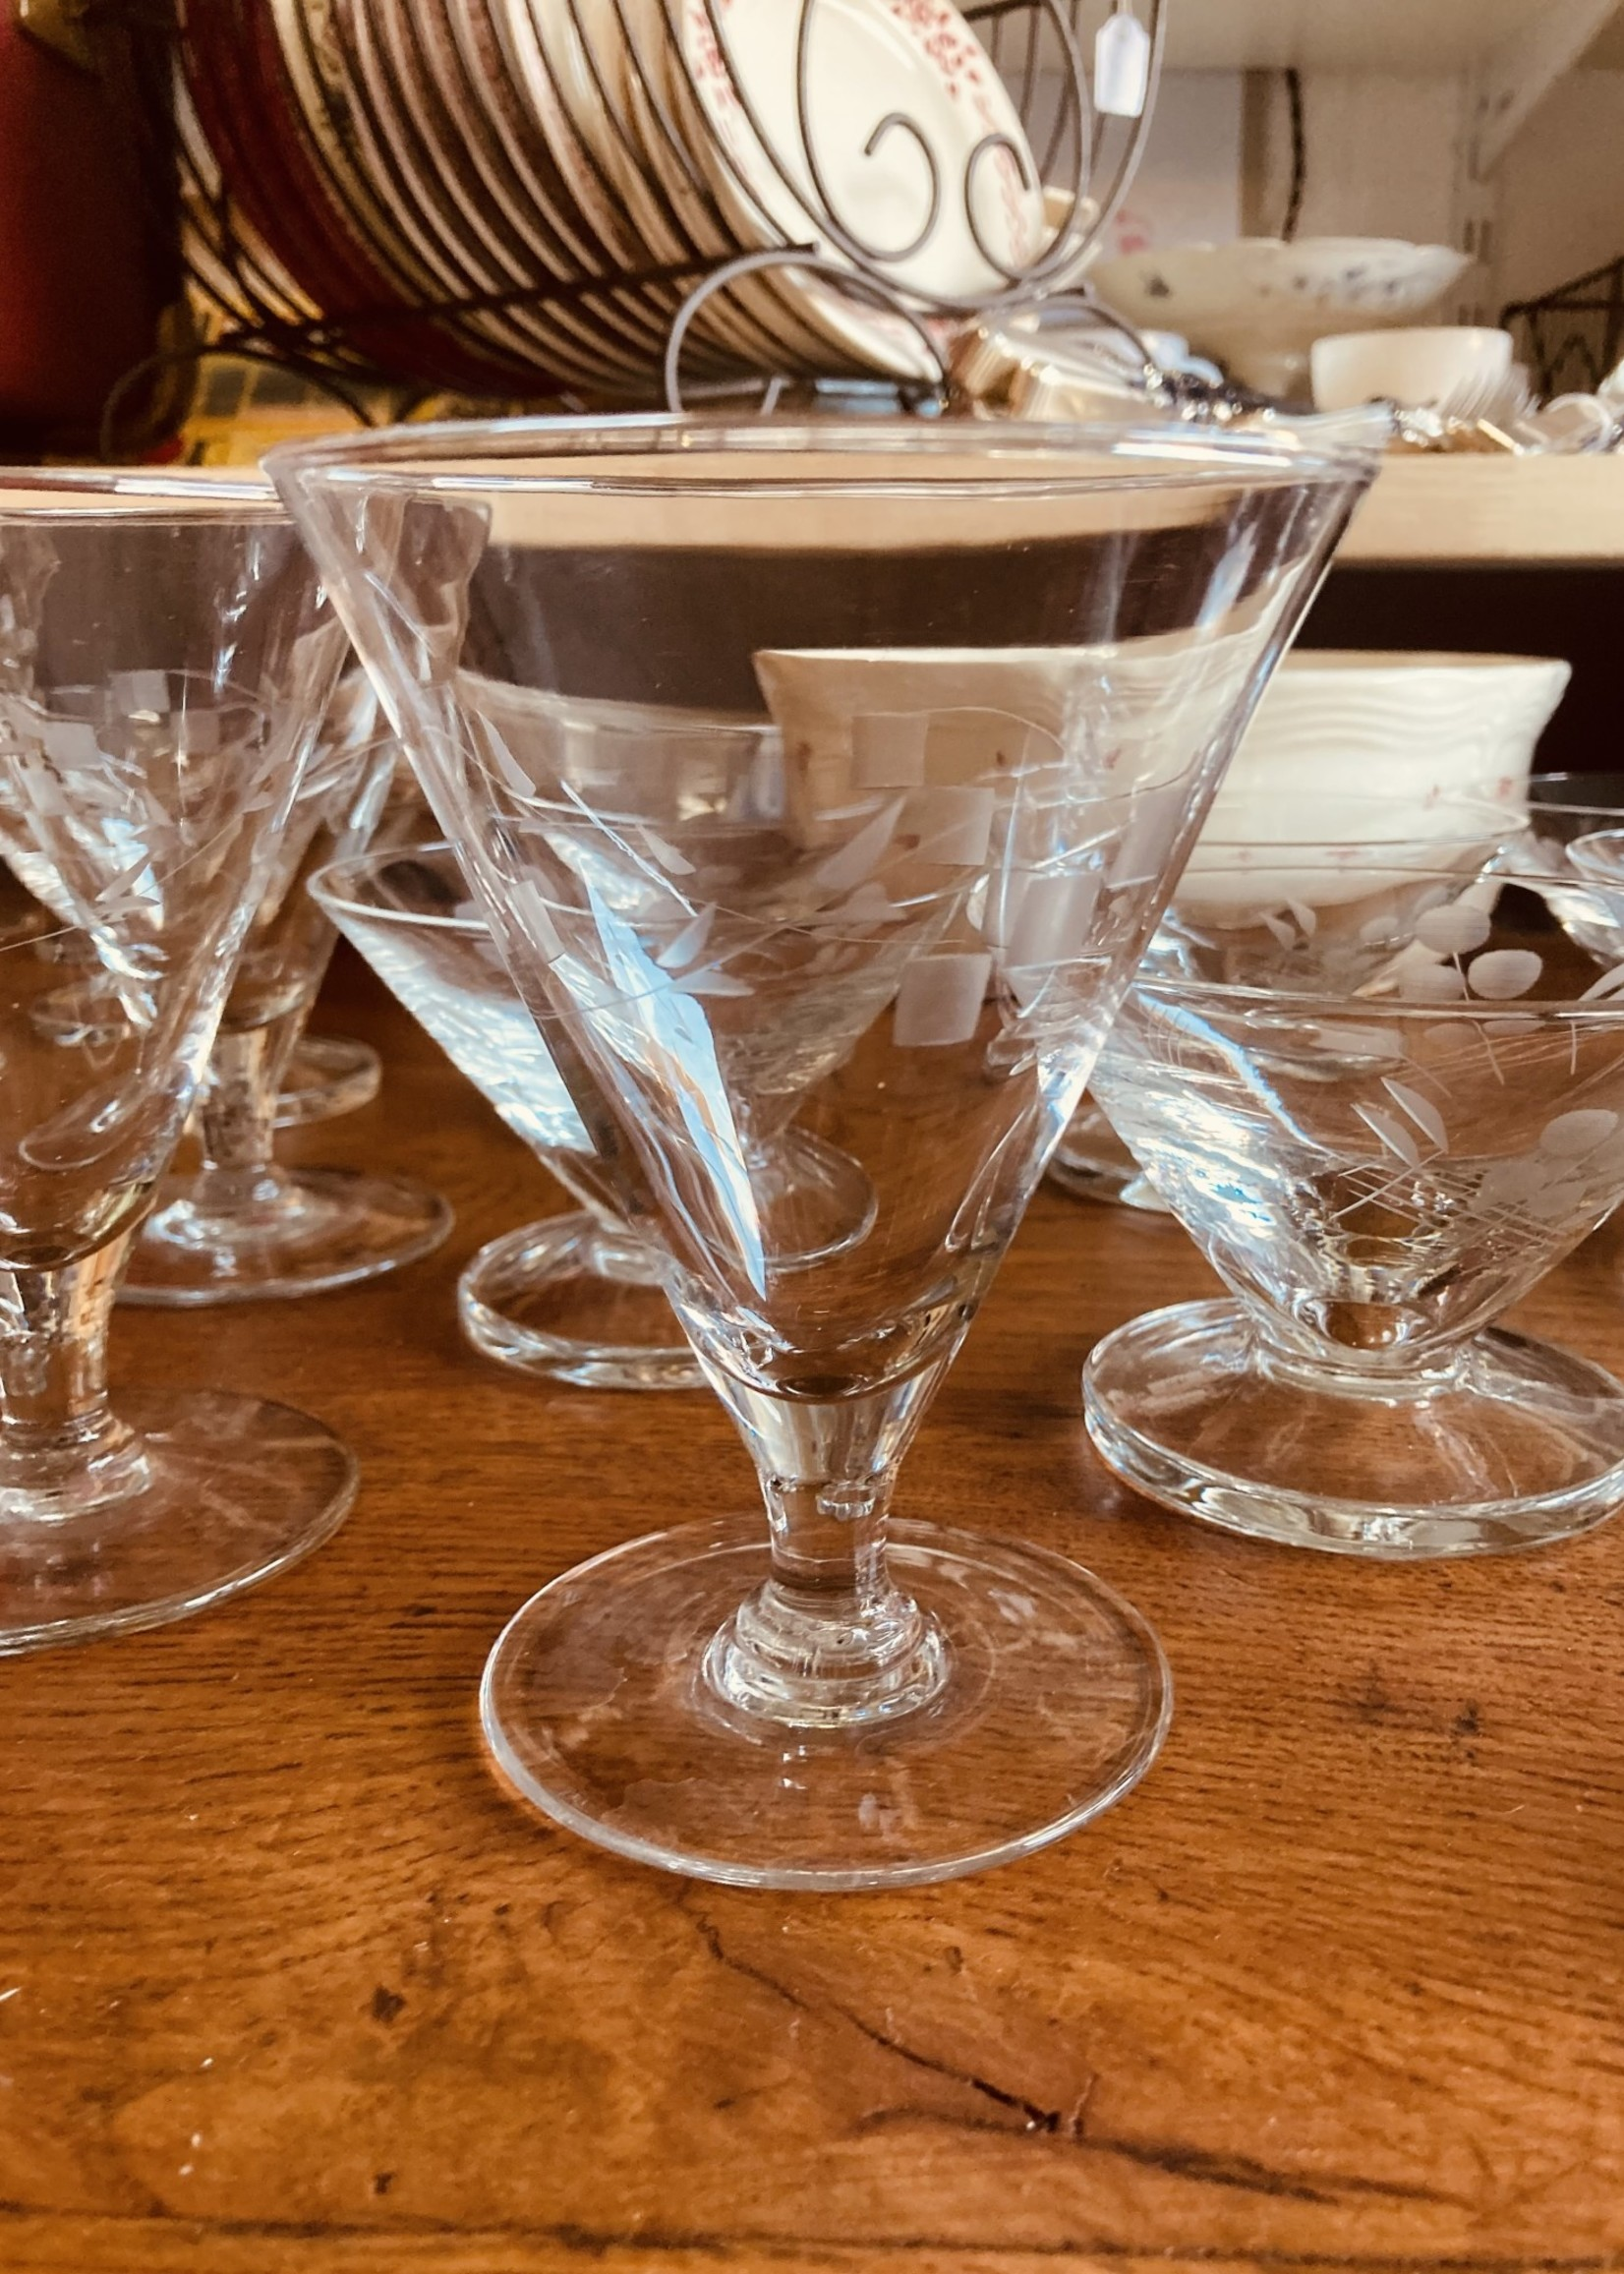 Large water glasses conic shaped with carved fruit in glass